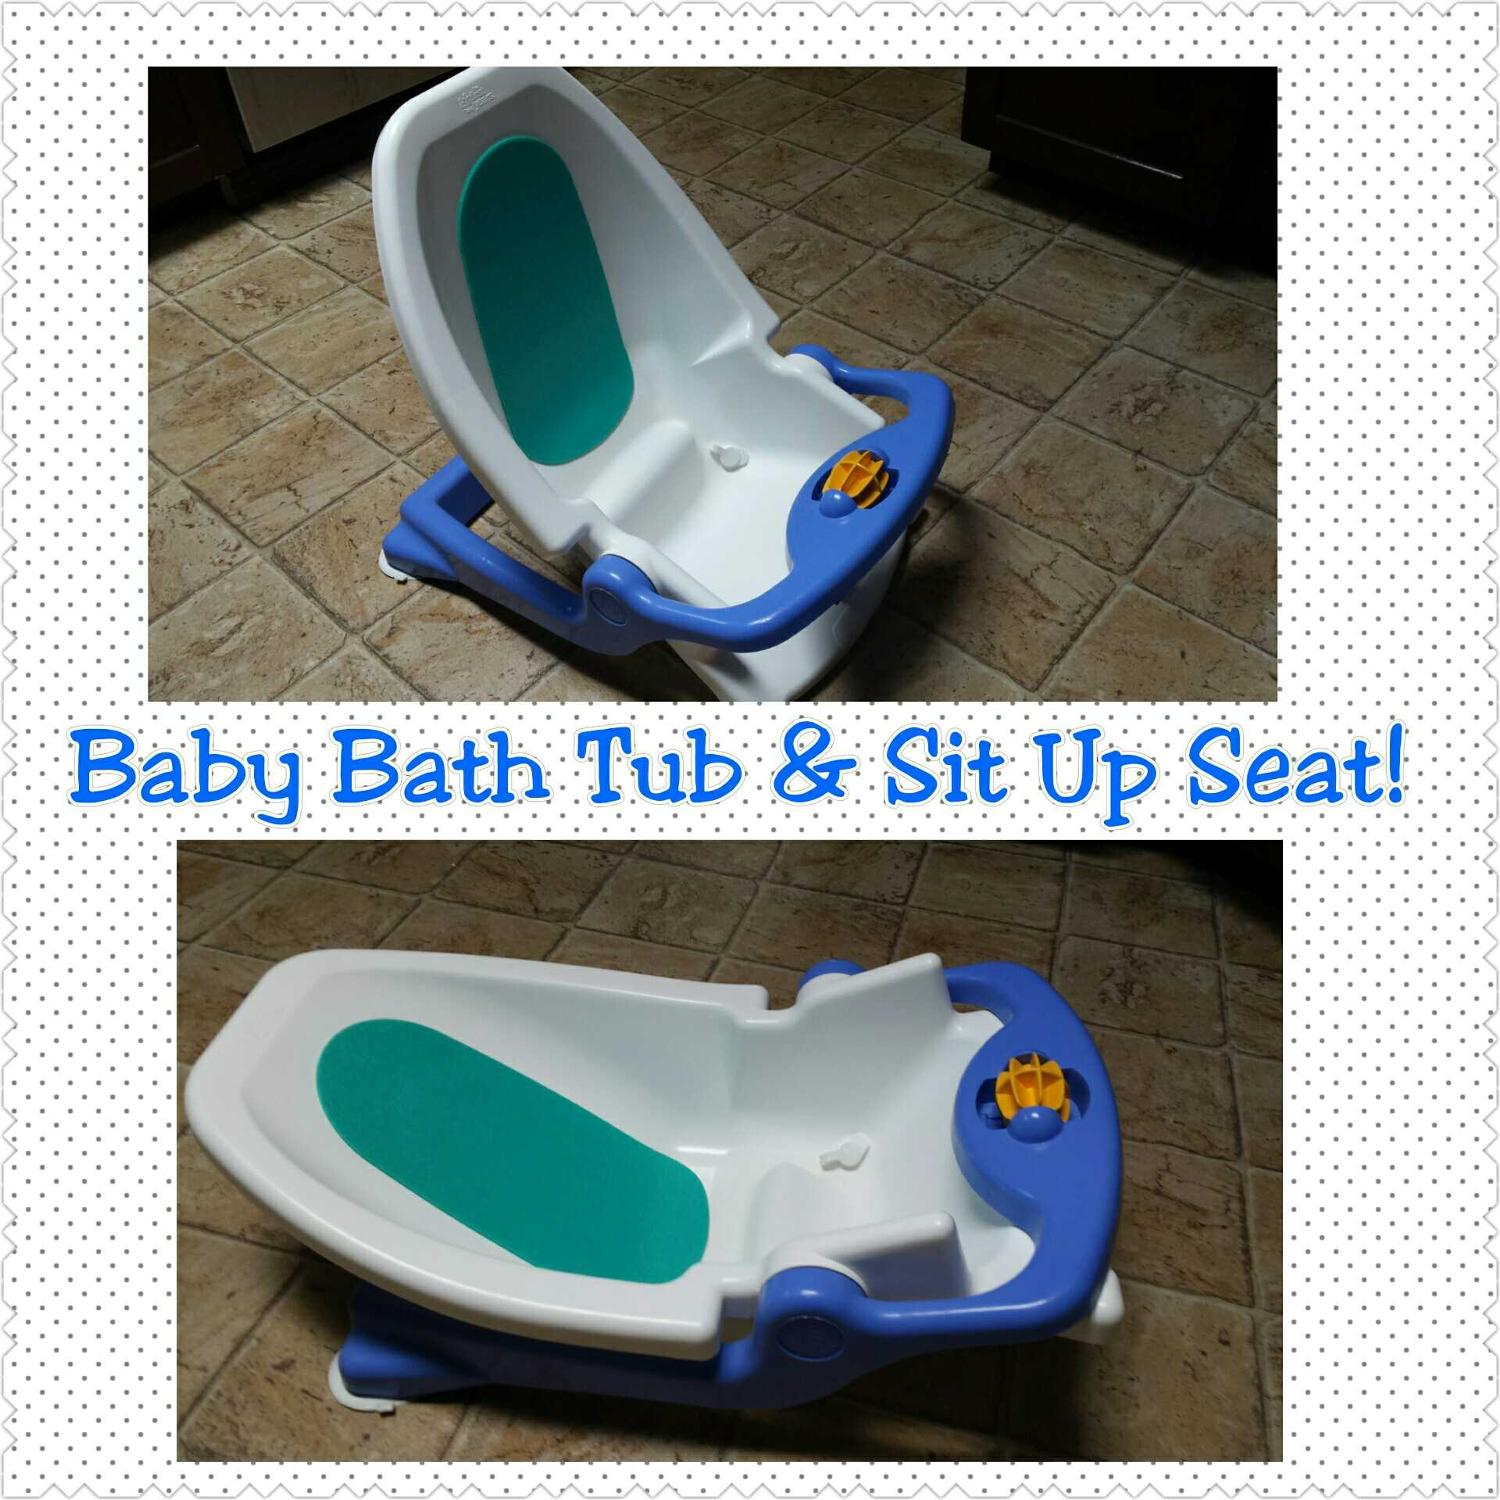 Find more Baby Bath Tub And Sit Up Seat! for sale at up to 90% off